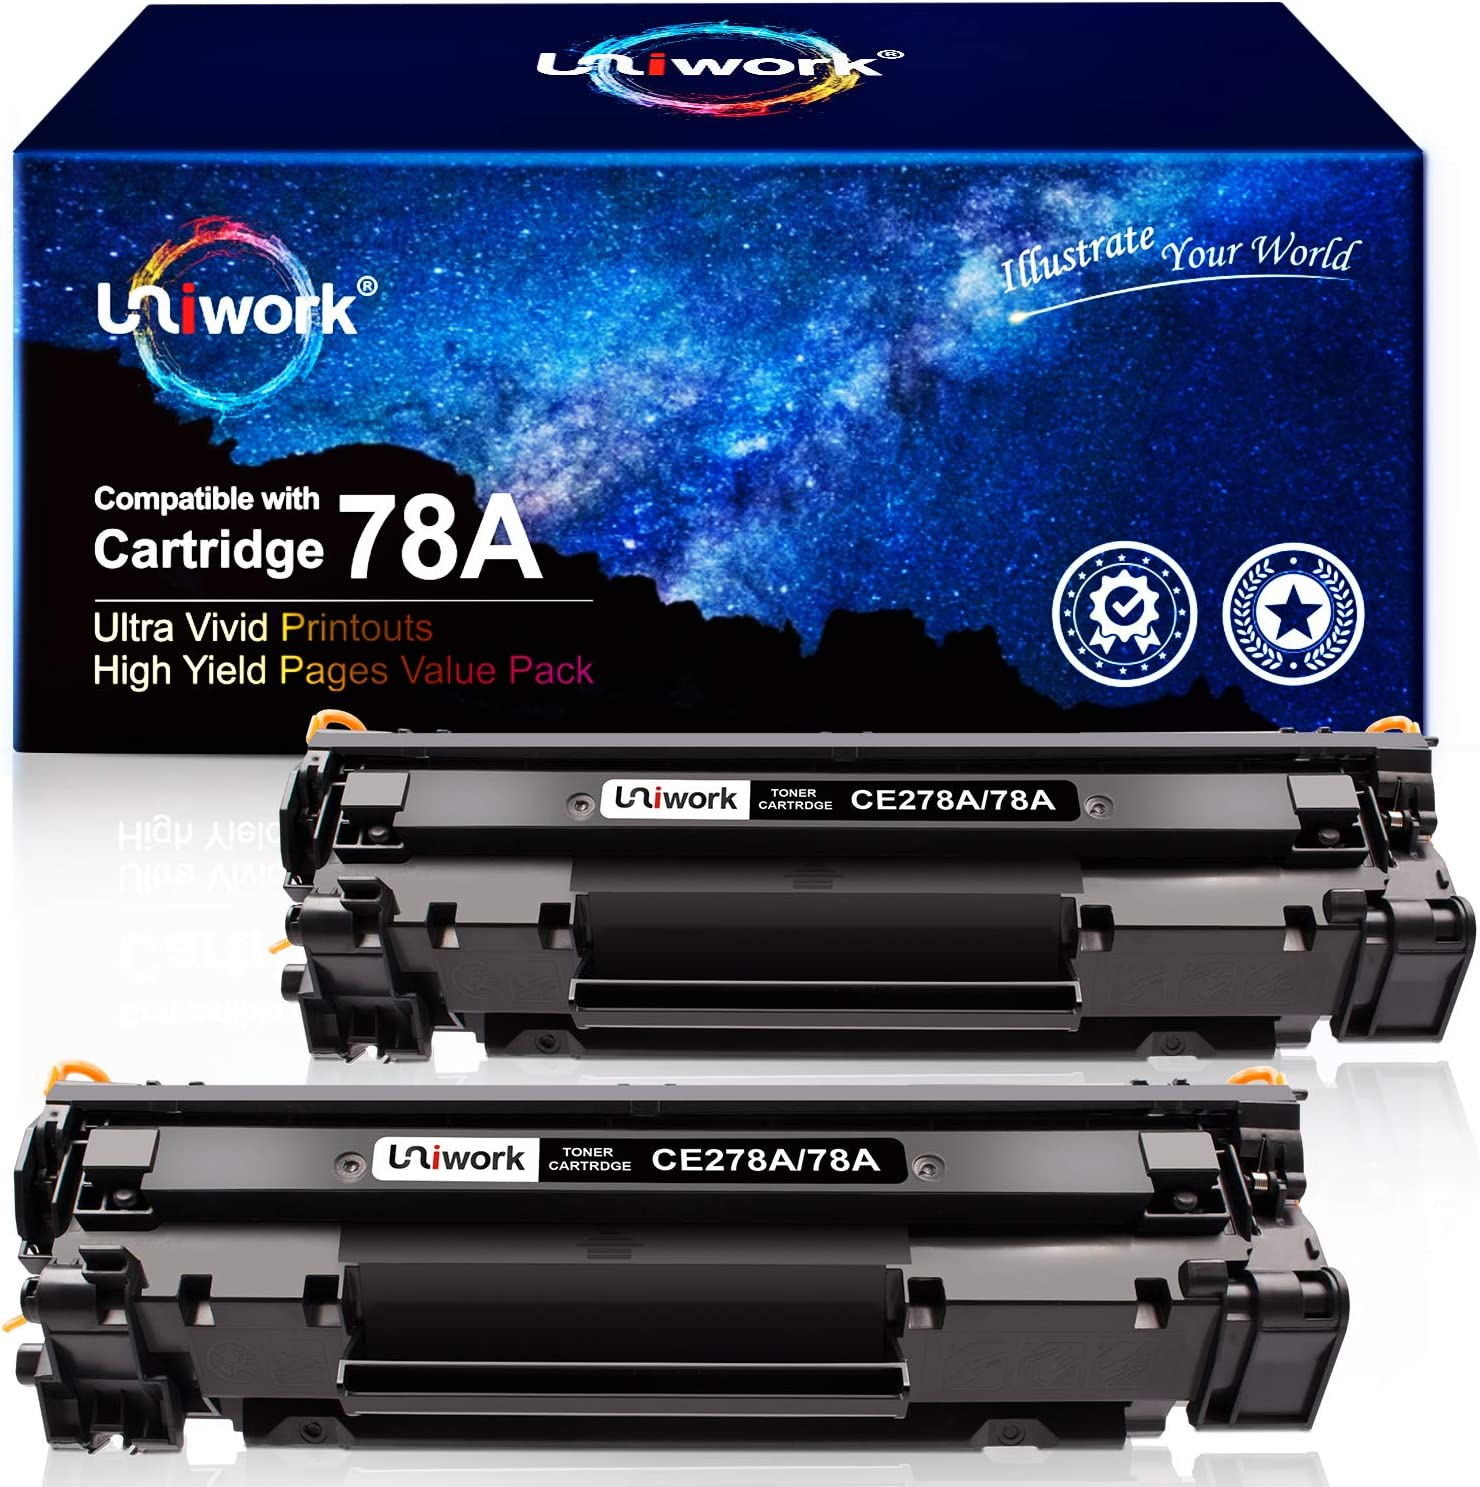 Uniwork Compatible Toner Cartridge Replacement for HP 78A CE278A use for Laserjet Pro P1606dn, M1536dnf, P1566, P1560, P1606, M1536 Printer (2 Black)